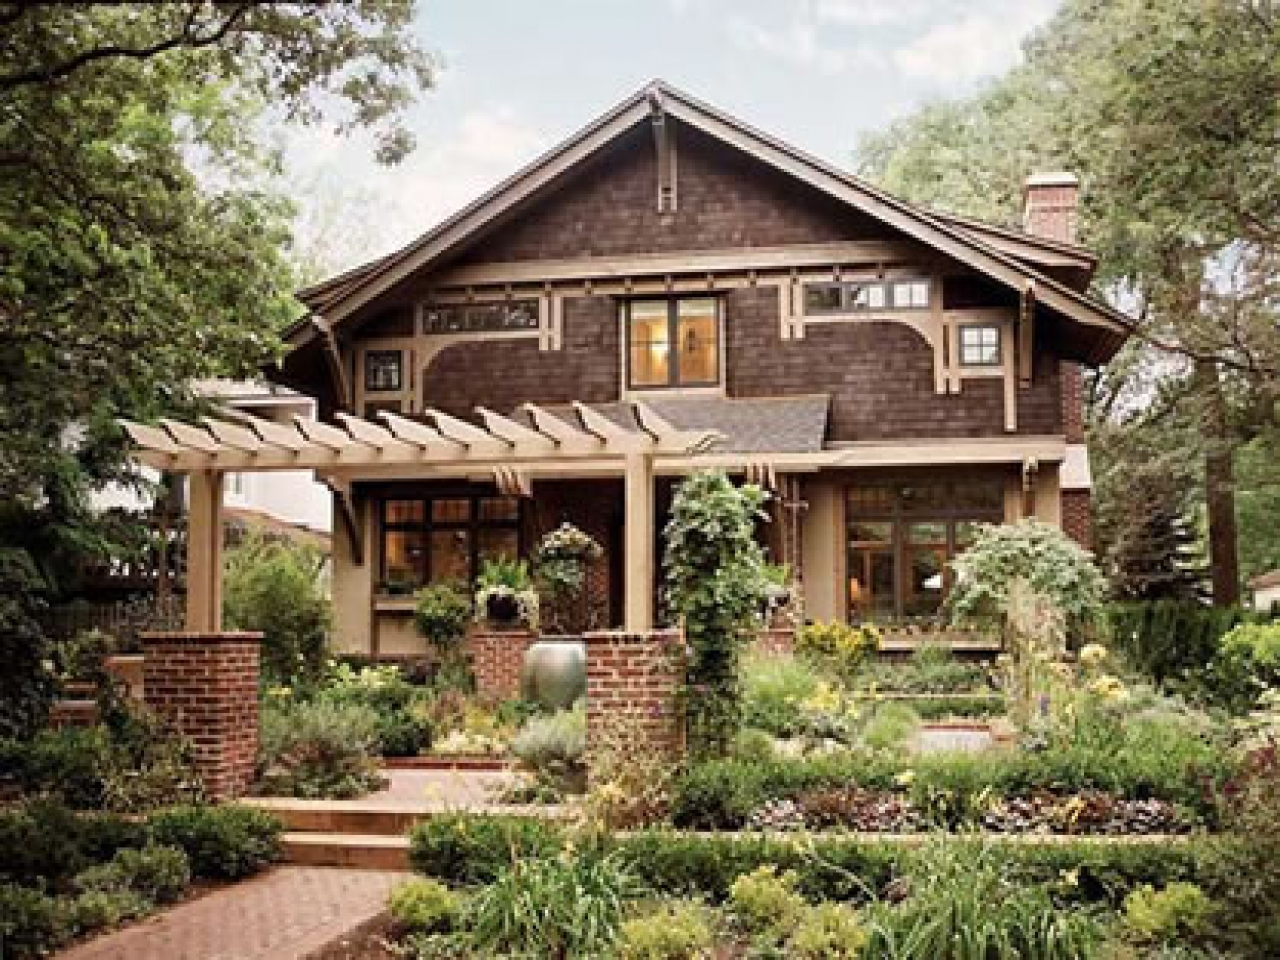 California Bungalow Arts And Crafts Bungalow House Plans